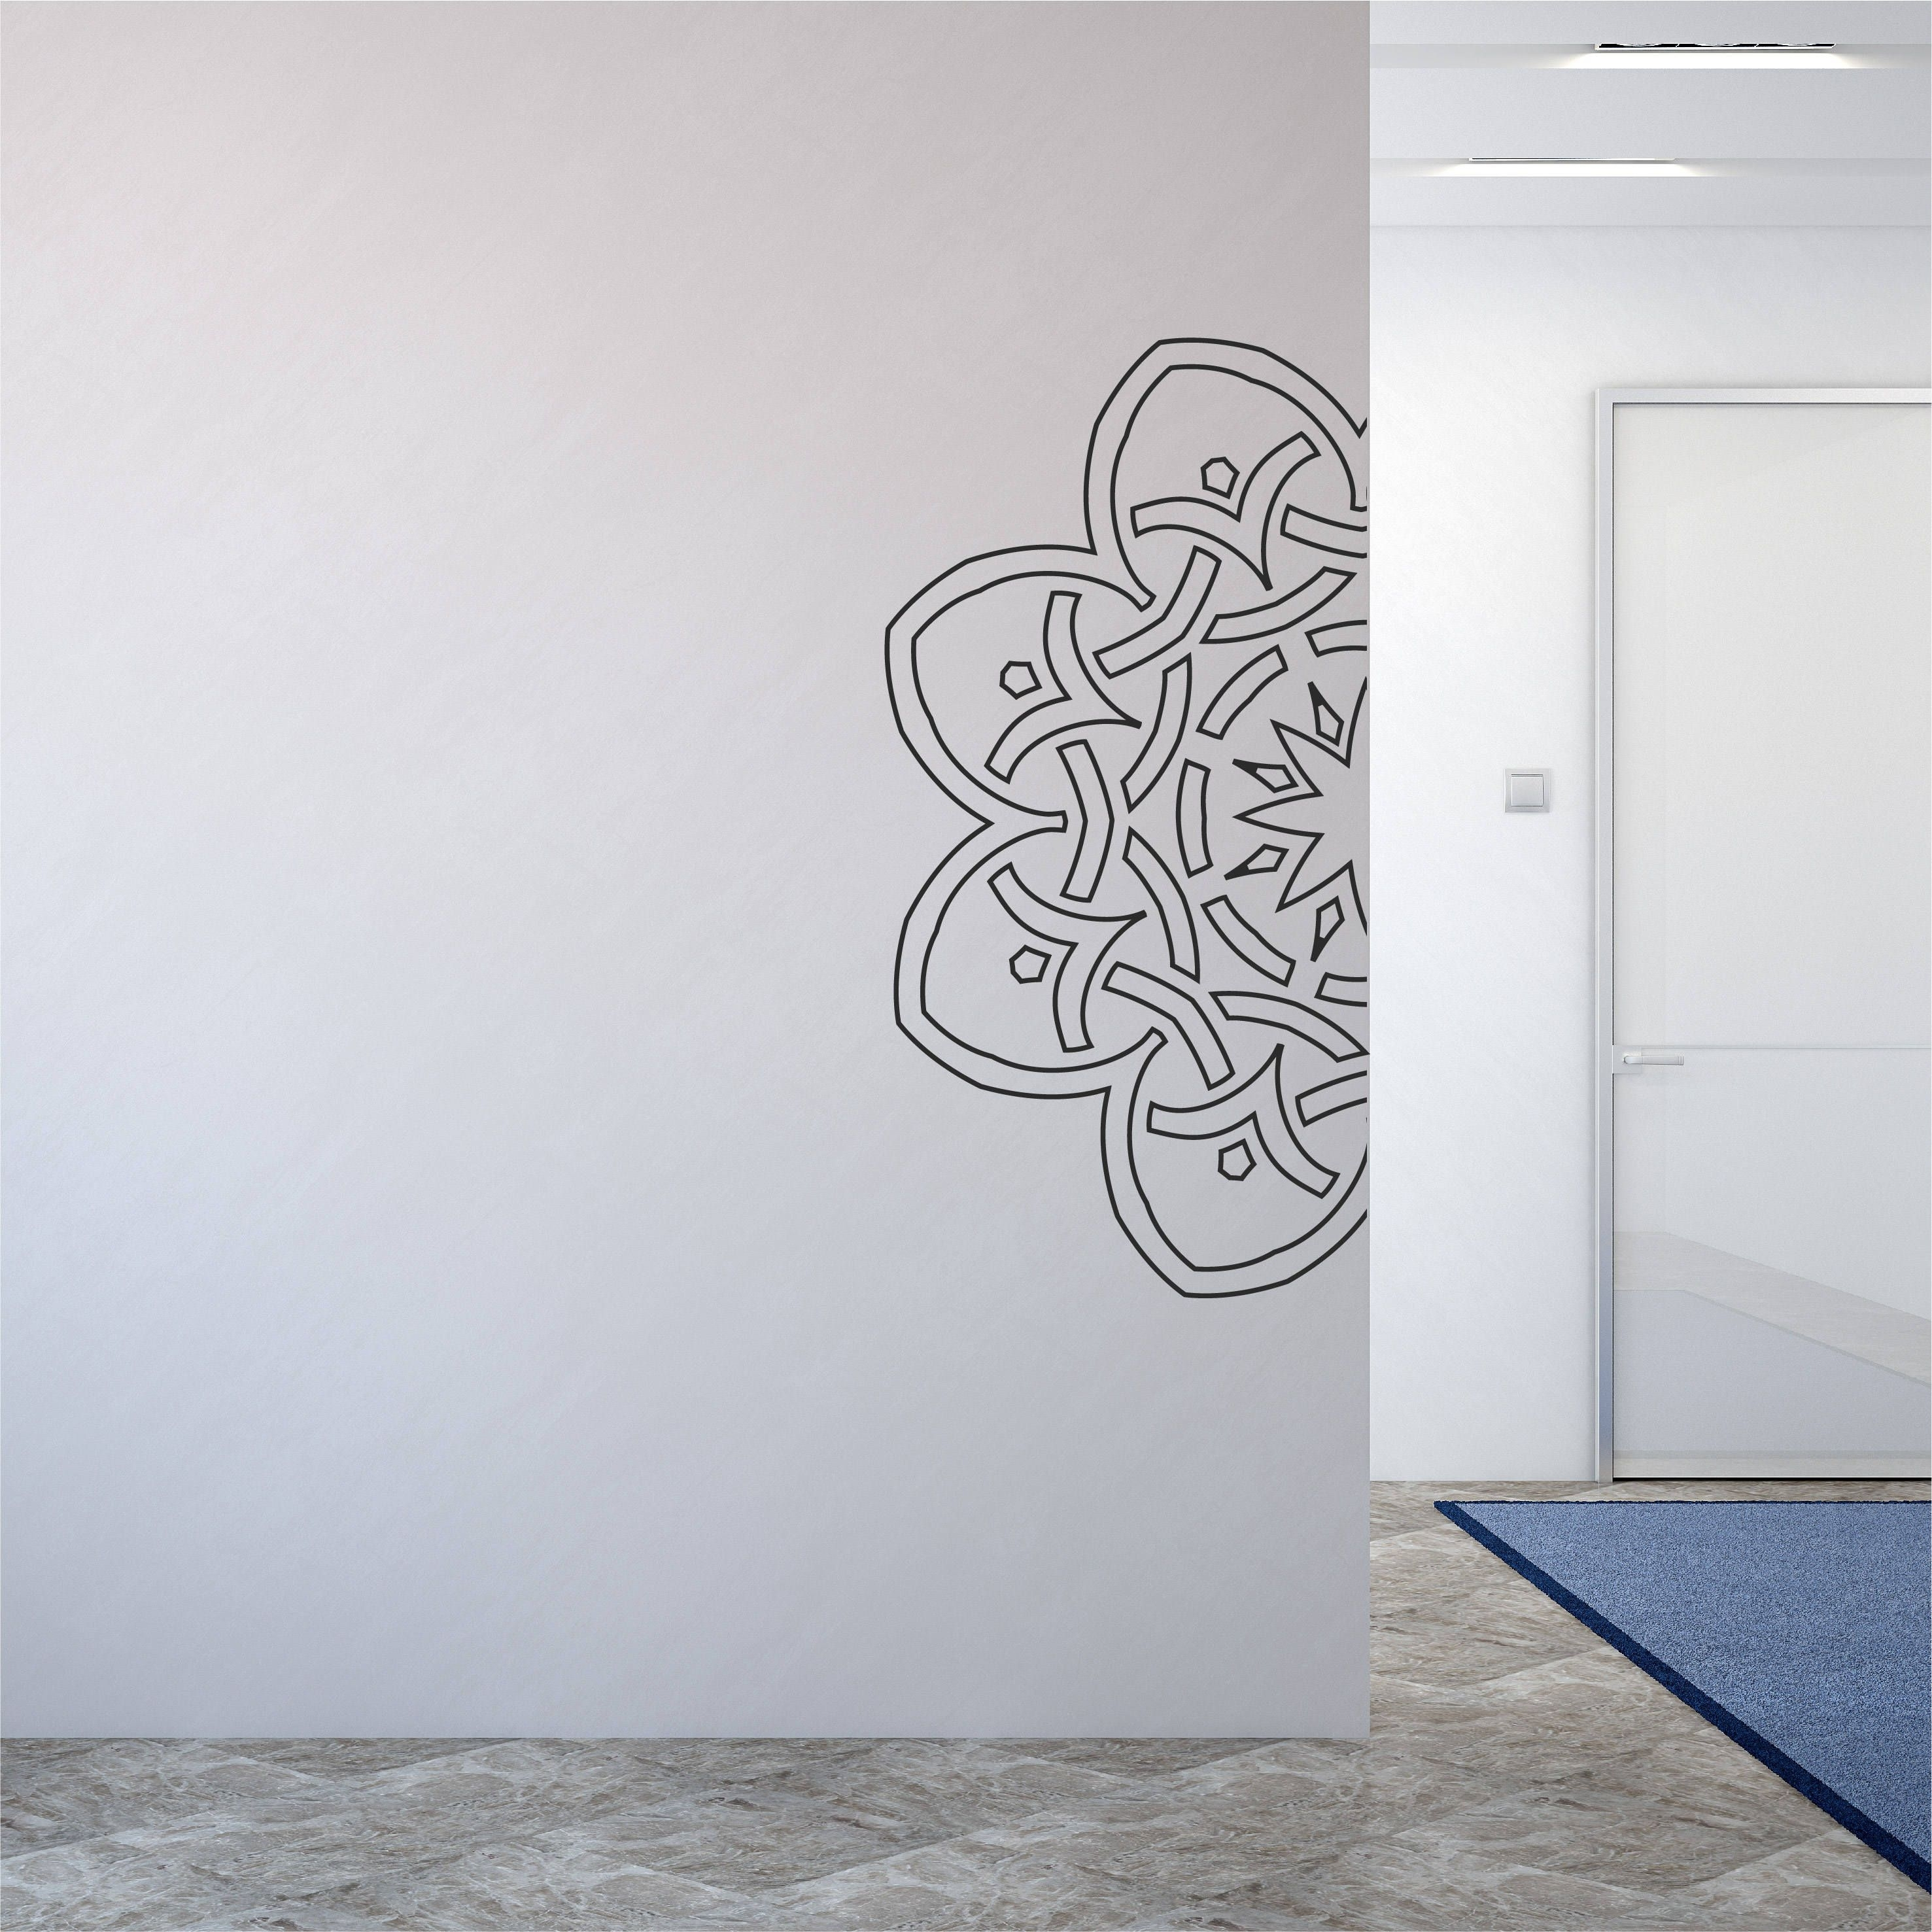 Henna Wall Decal Geometric Wall Sticker Pattern Design Hippie Decor Pertaining To Most Current Henna Wall Art (View 12 of 20)